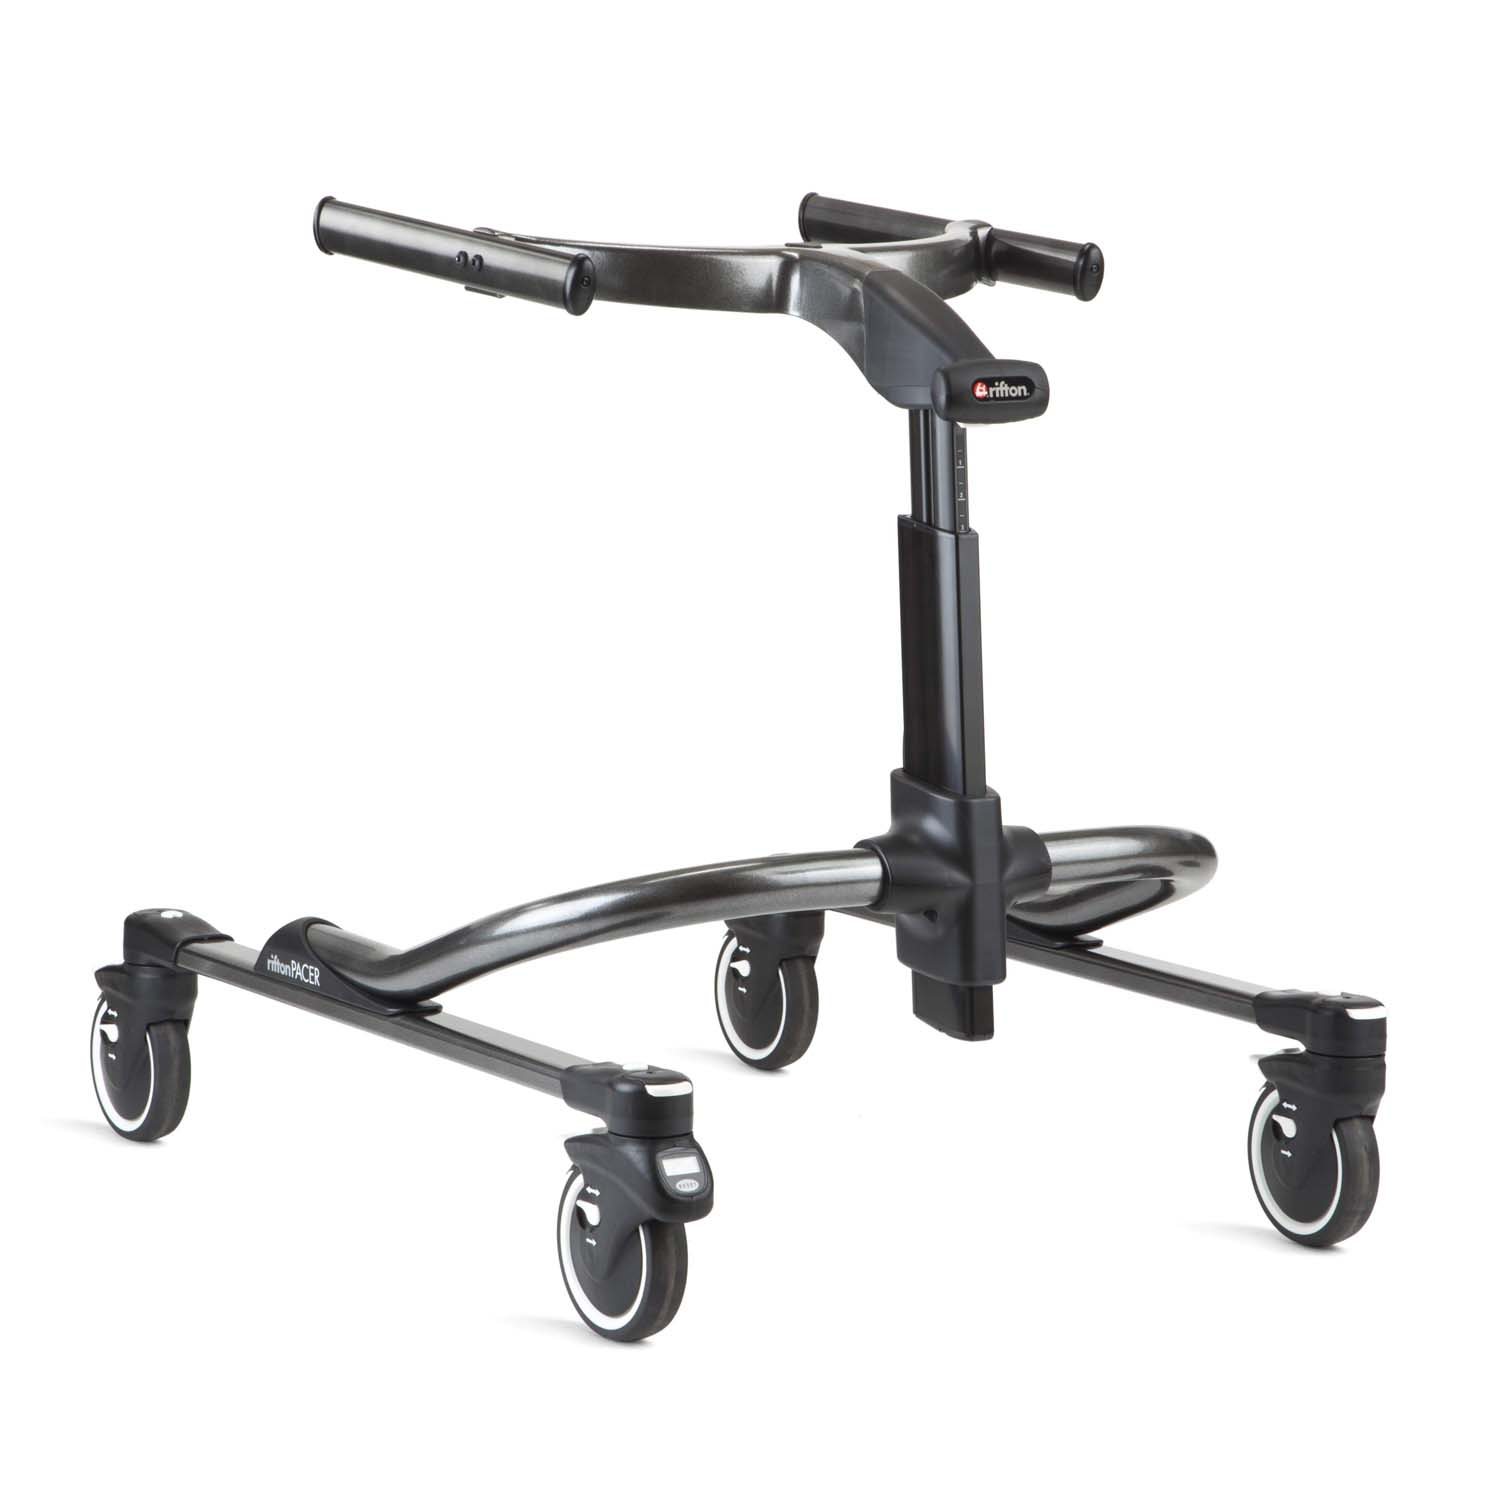 Rifton small pacer gait trainer